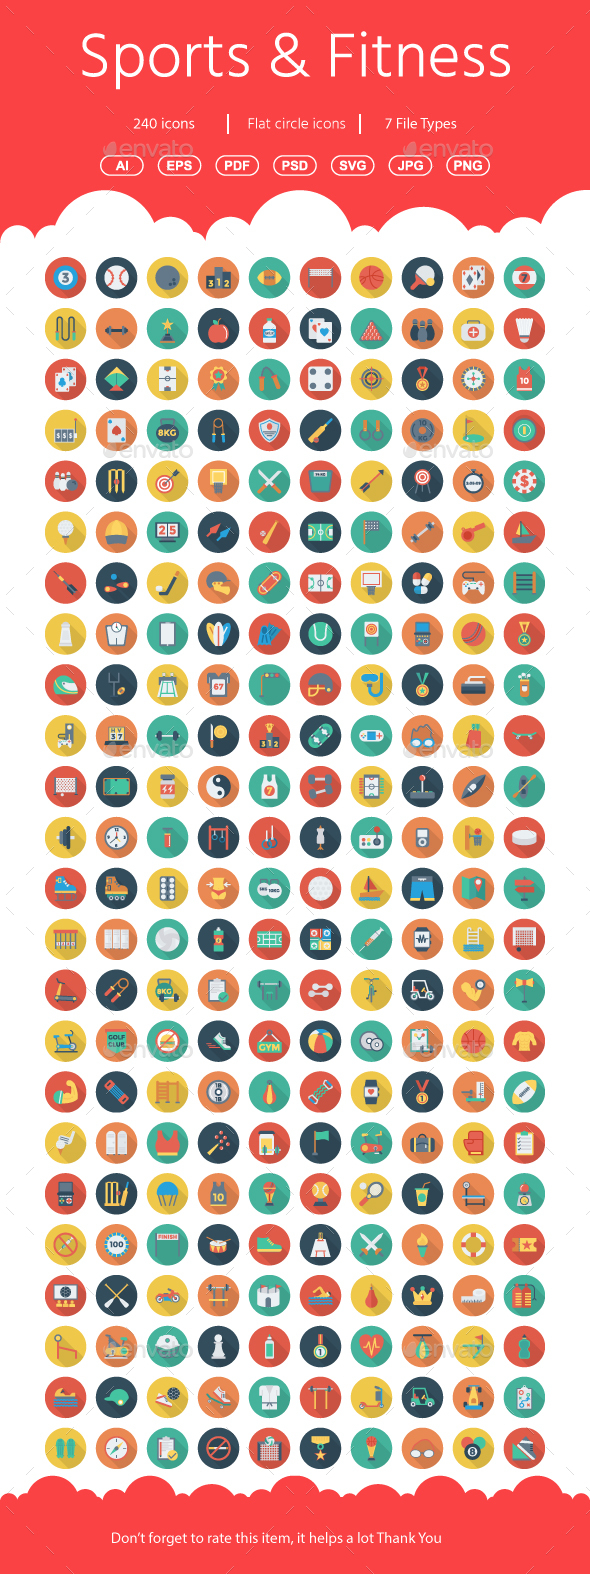 GraphicRiver Sports and Fitness Flat Circle icons 21110328